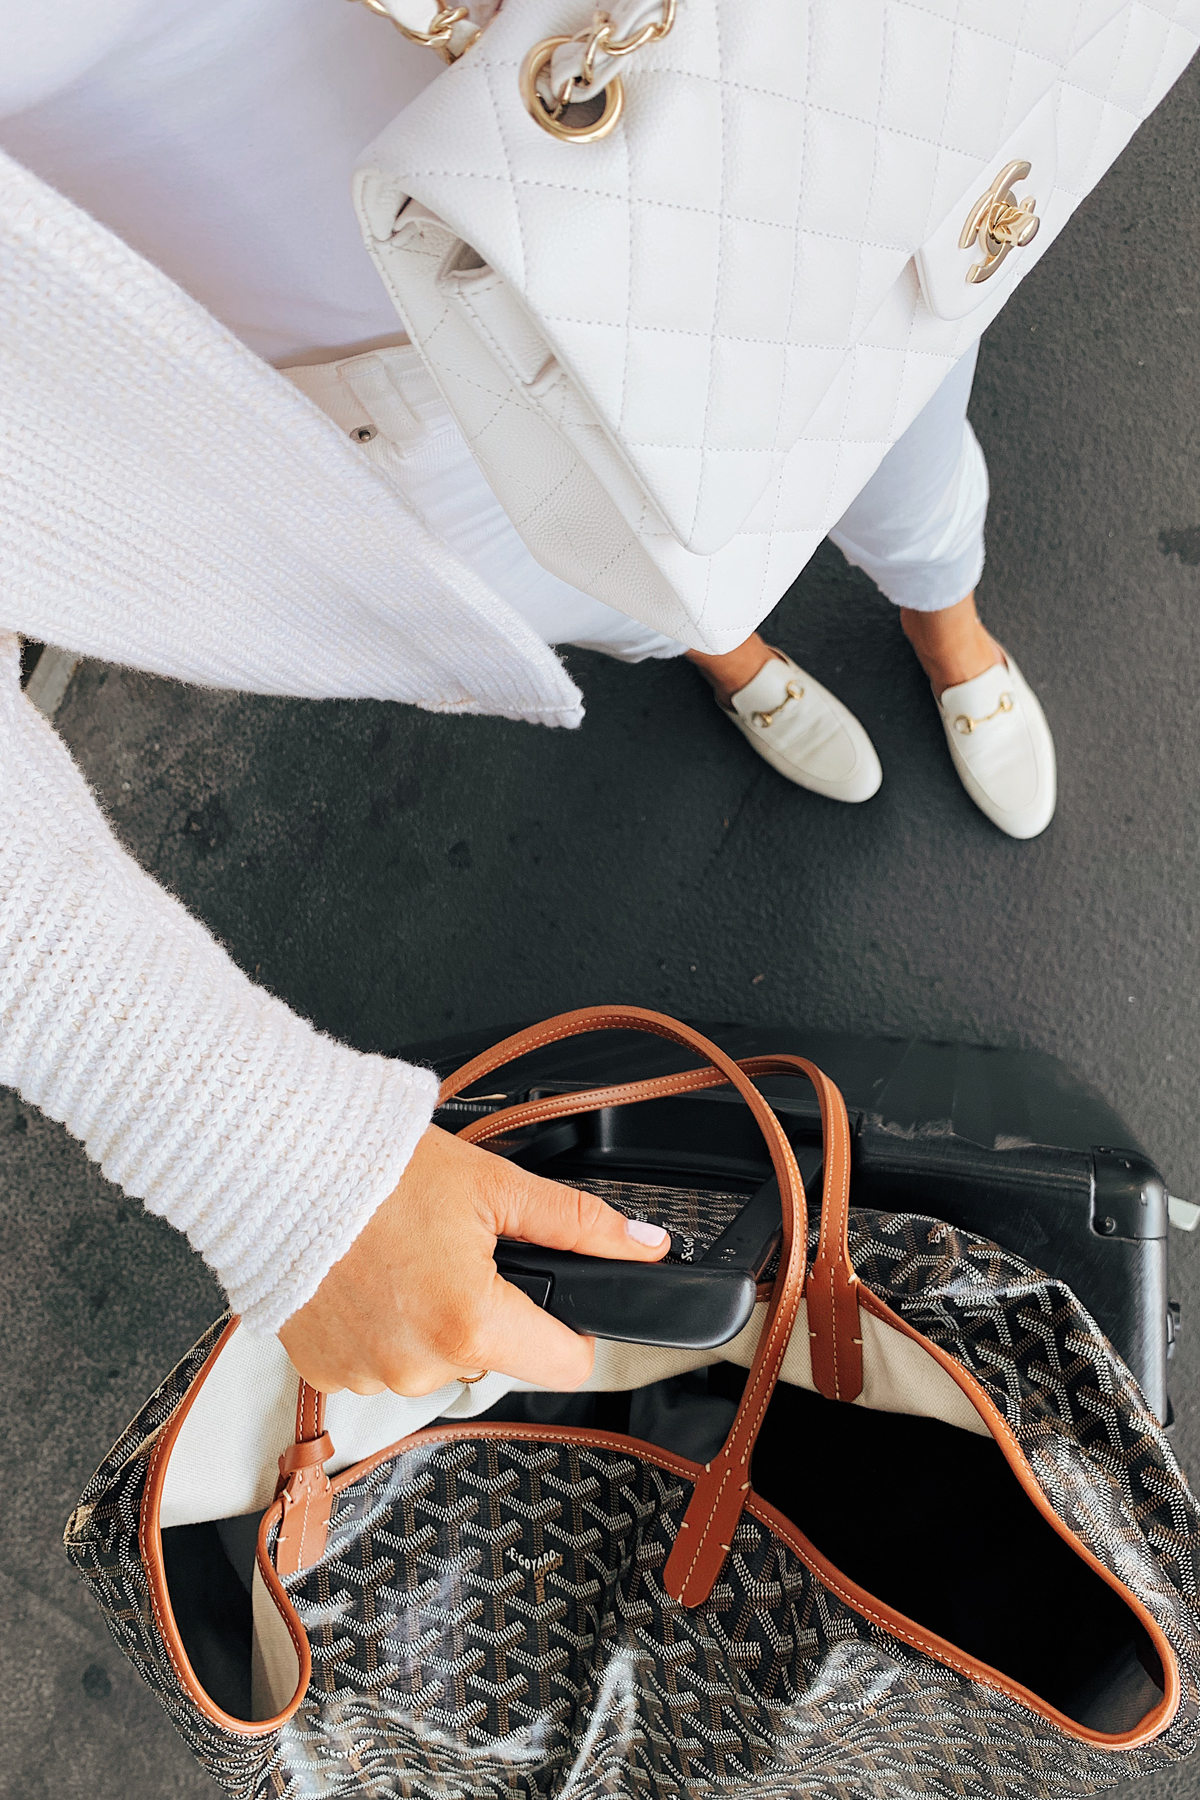 Fashion Jackson Wearing Free People White Tunic Sweater Levis High Rise Jeans White Gucci Muules White Chanel Handbag Calpak Luggage Goyard Tote Airport Outfit Travel Outfit 1